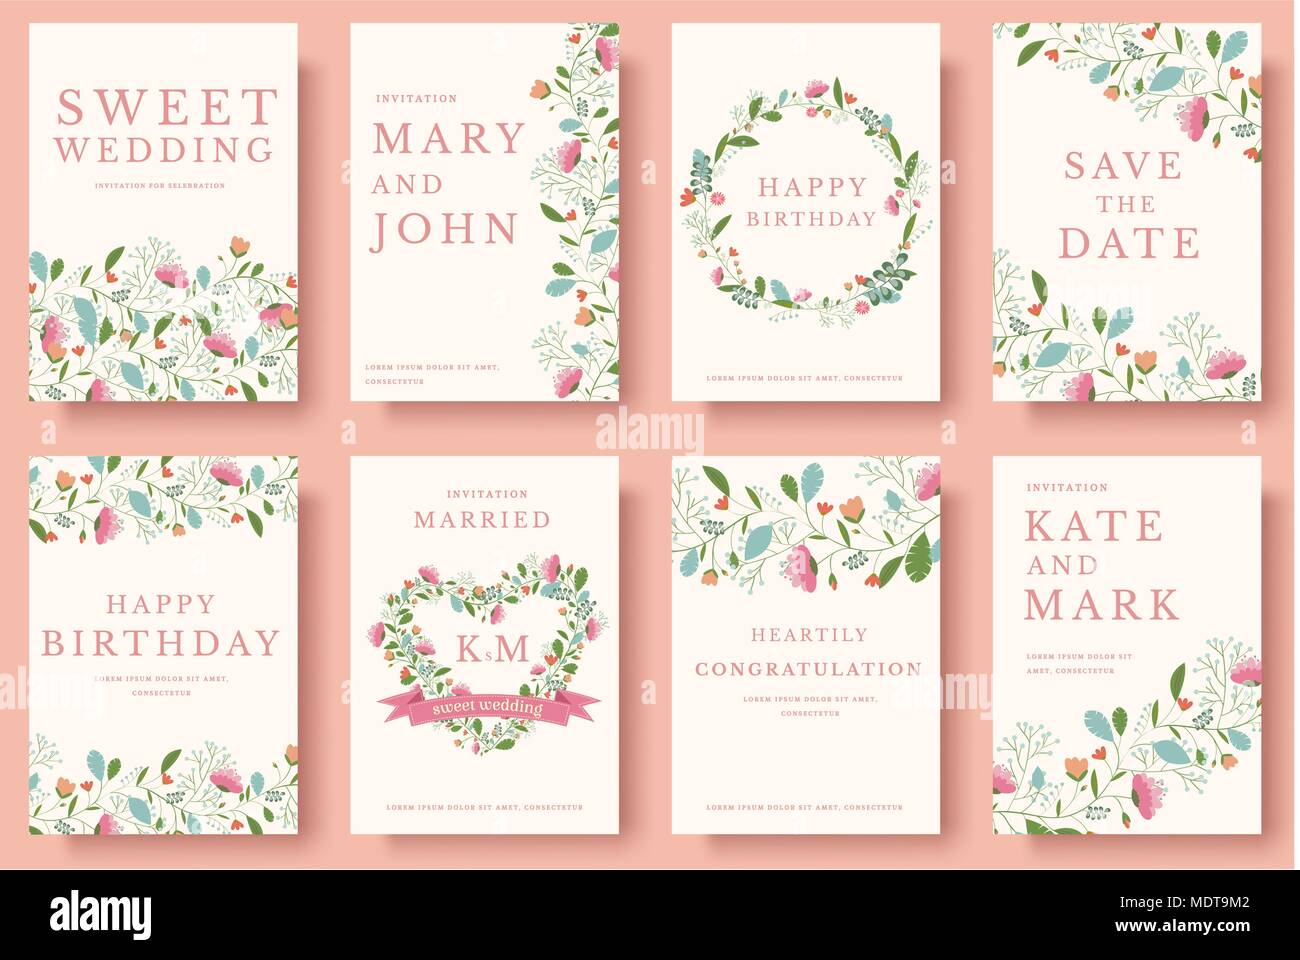 Set Of Flower Invitation Cards Colorful Greeting Wedding